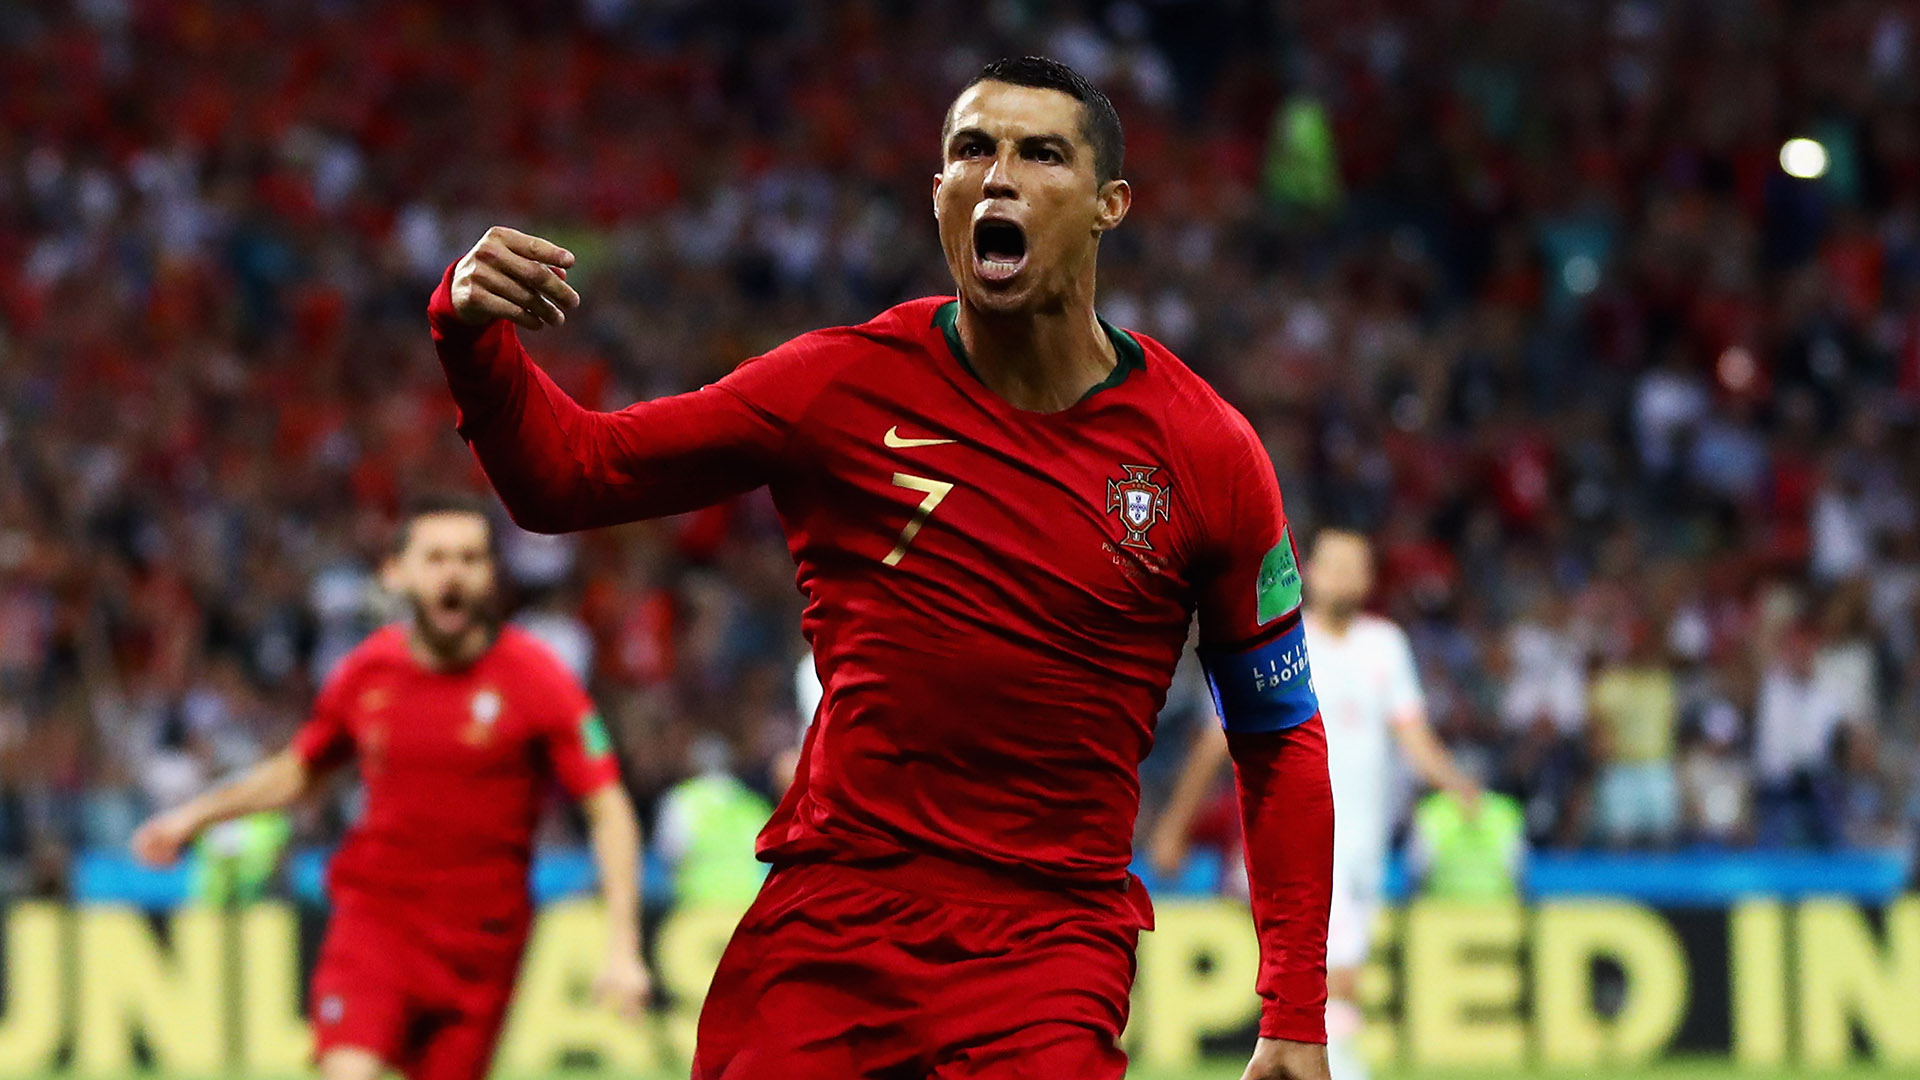 Cristiano Ronaldos history at the World Cup 2006 debut 2014 heartache  recordbreaking 2018